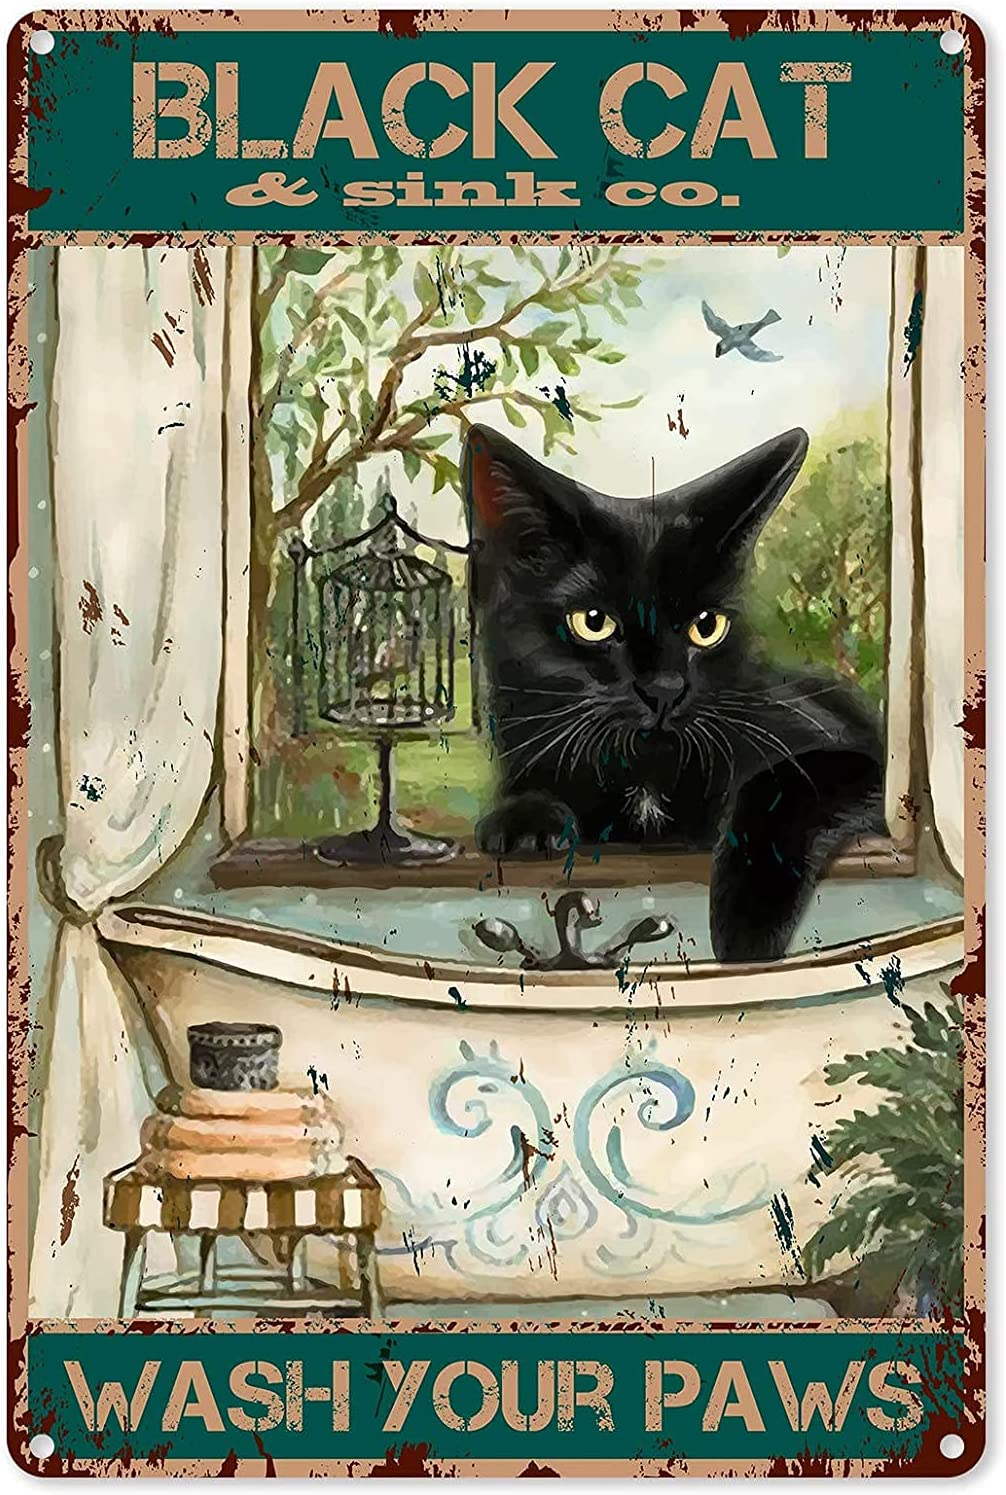 GadgetsTalk Funny Bathroom Quote Metal Tin Sign Wall Decor - Vintage Black Cat Wash Your Paws Tin Sign for Office/Home/Classroom Bathroom Decor Gifts - 8x12 Inch